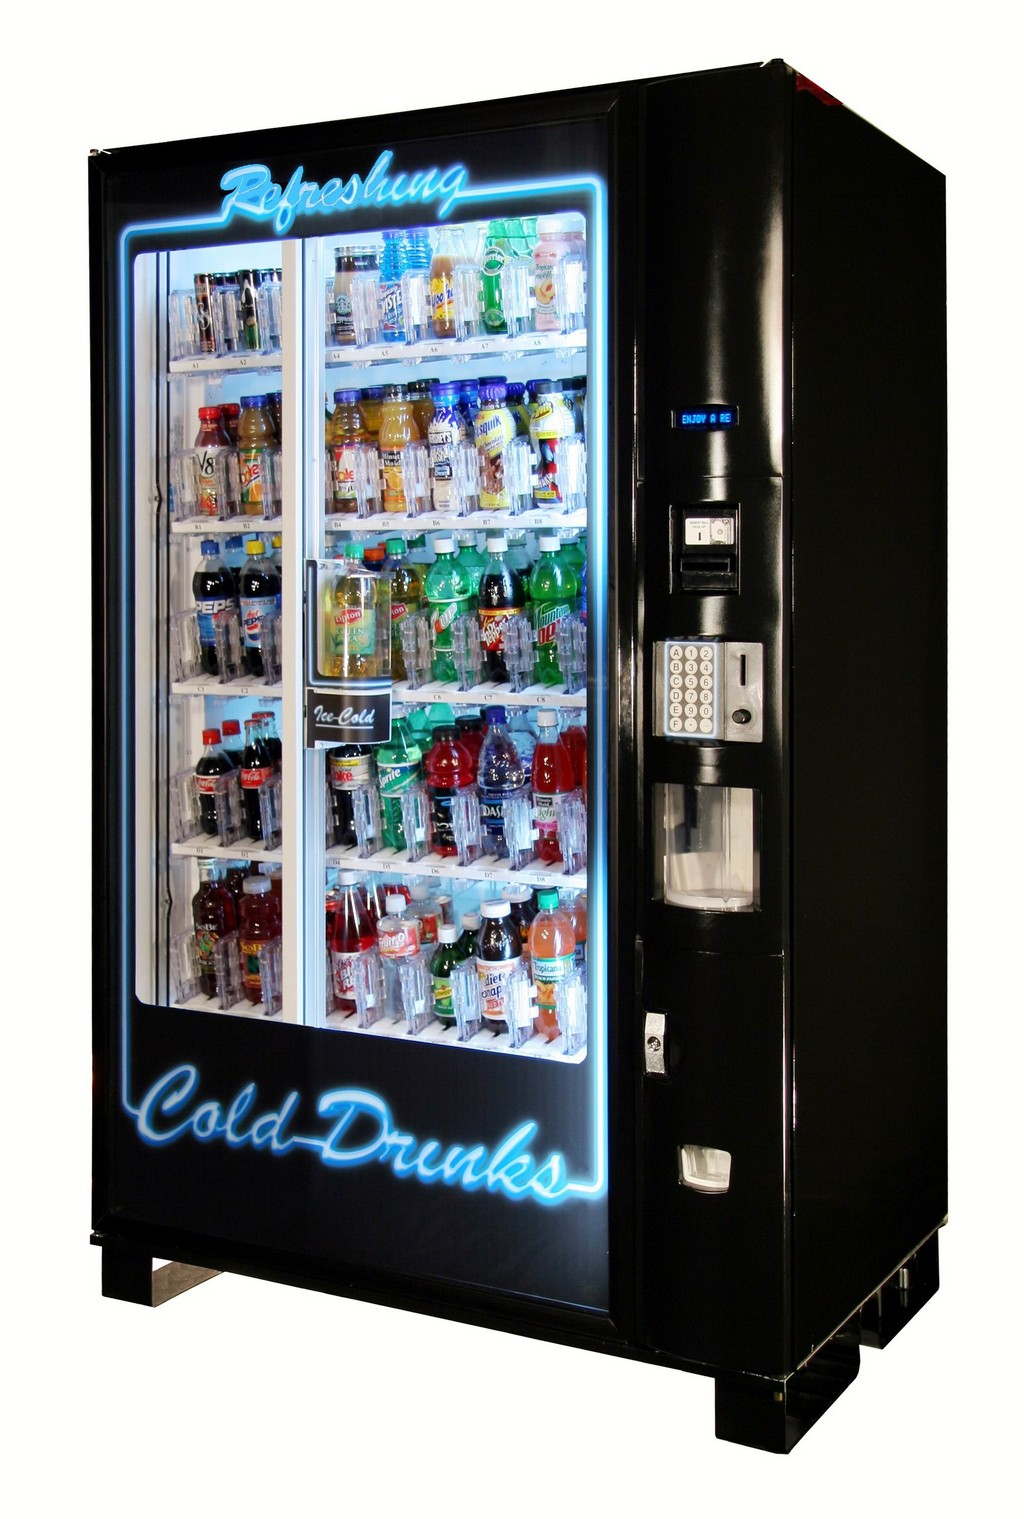 vending machine company, vending machine for sale in miami, vending machine manufacturer